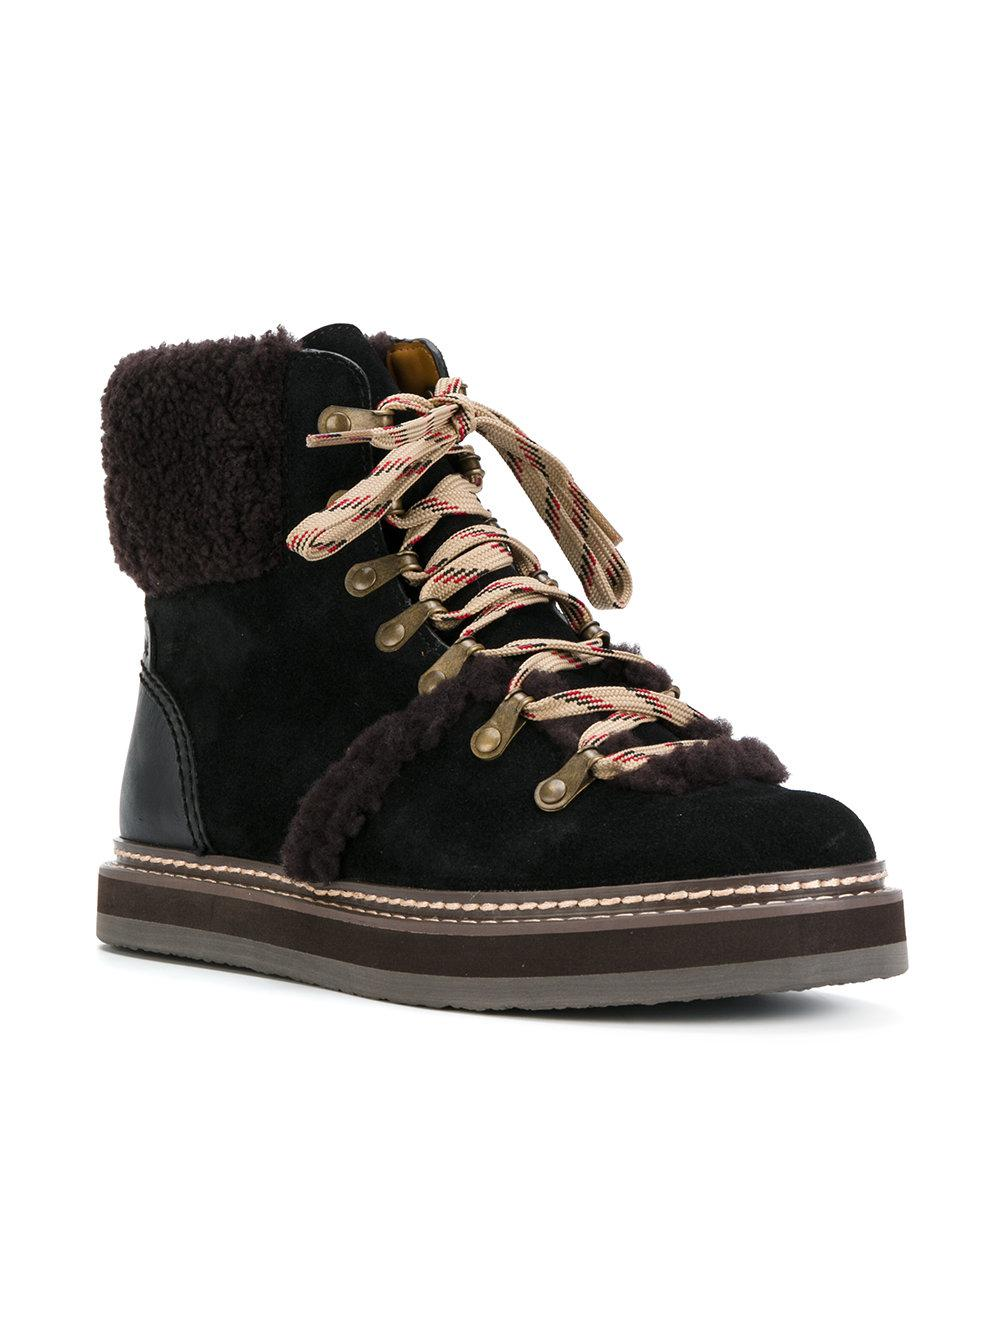 See By Chloé Suede Eileen Flat Shearling Boots in Nero (Black)